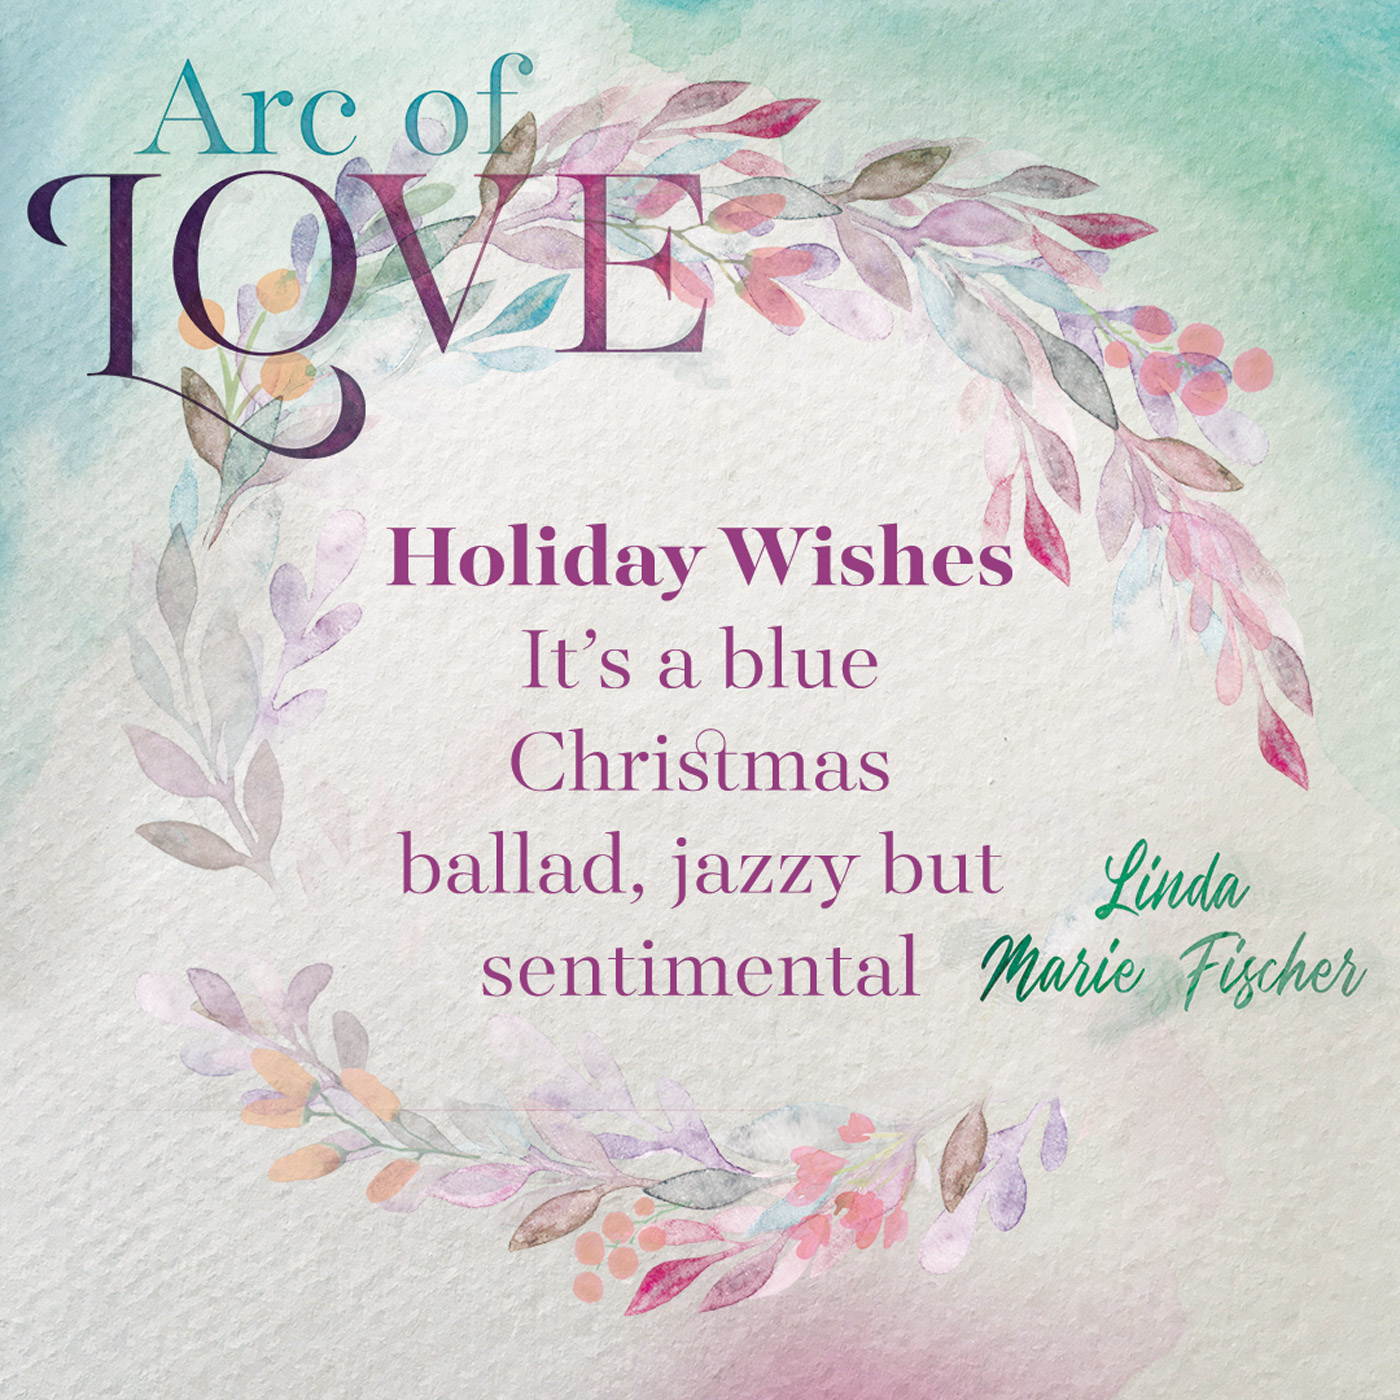 Arc of Love - Holiday Wishes.jpg